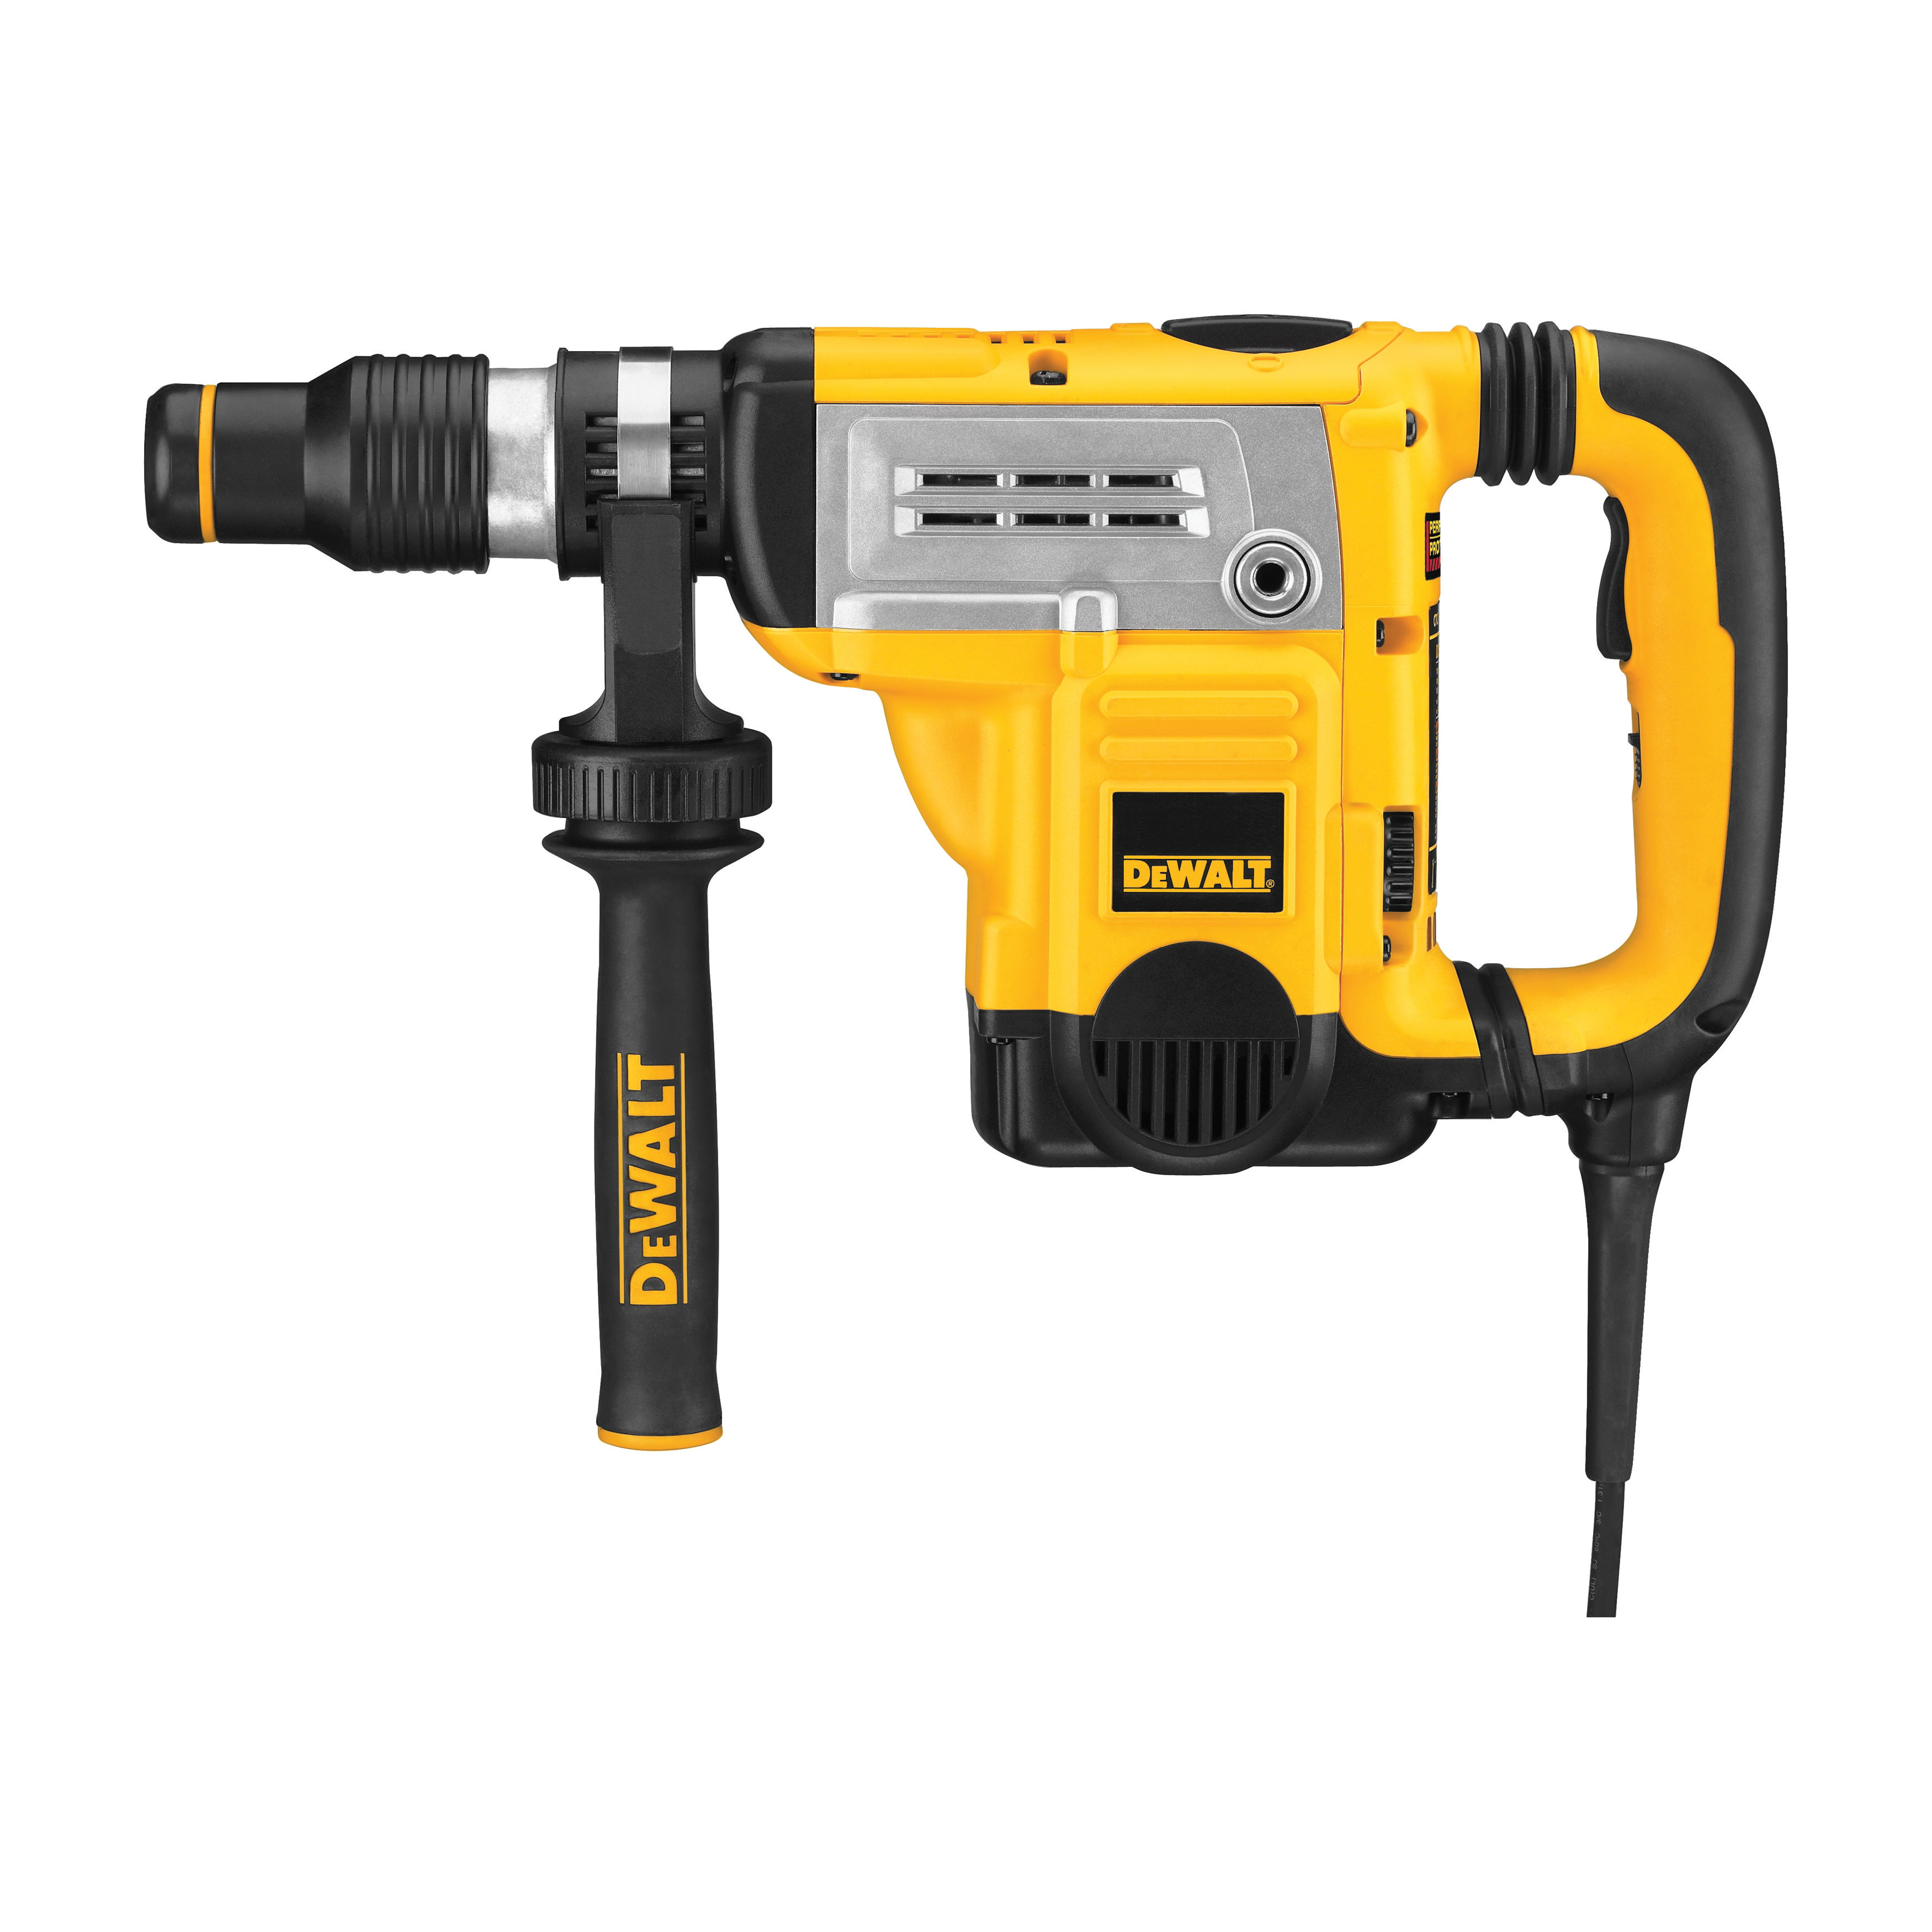 DeWALT® D25601K Combination Rotary Hammer Kit, 1-3/4 in SDS Max® Chuck, 1430 to 2840 bpm, 210 to 415 rpm No-Load, 4 in Max Core Bit Compatibility, 1-1/4 in Max Solid Bit Capacity, 18.600000000000001 in OAL